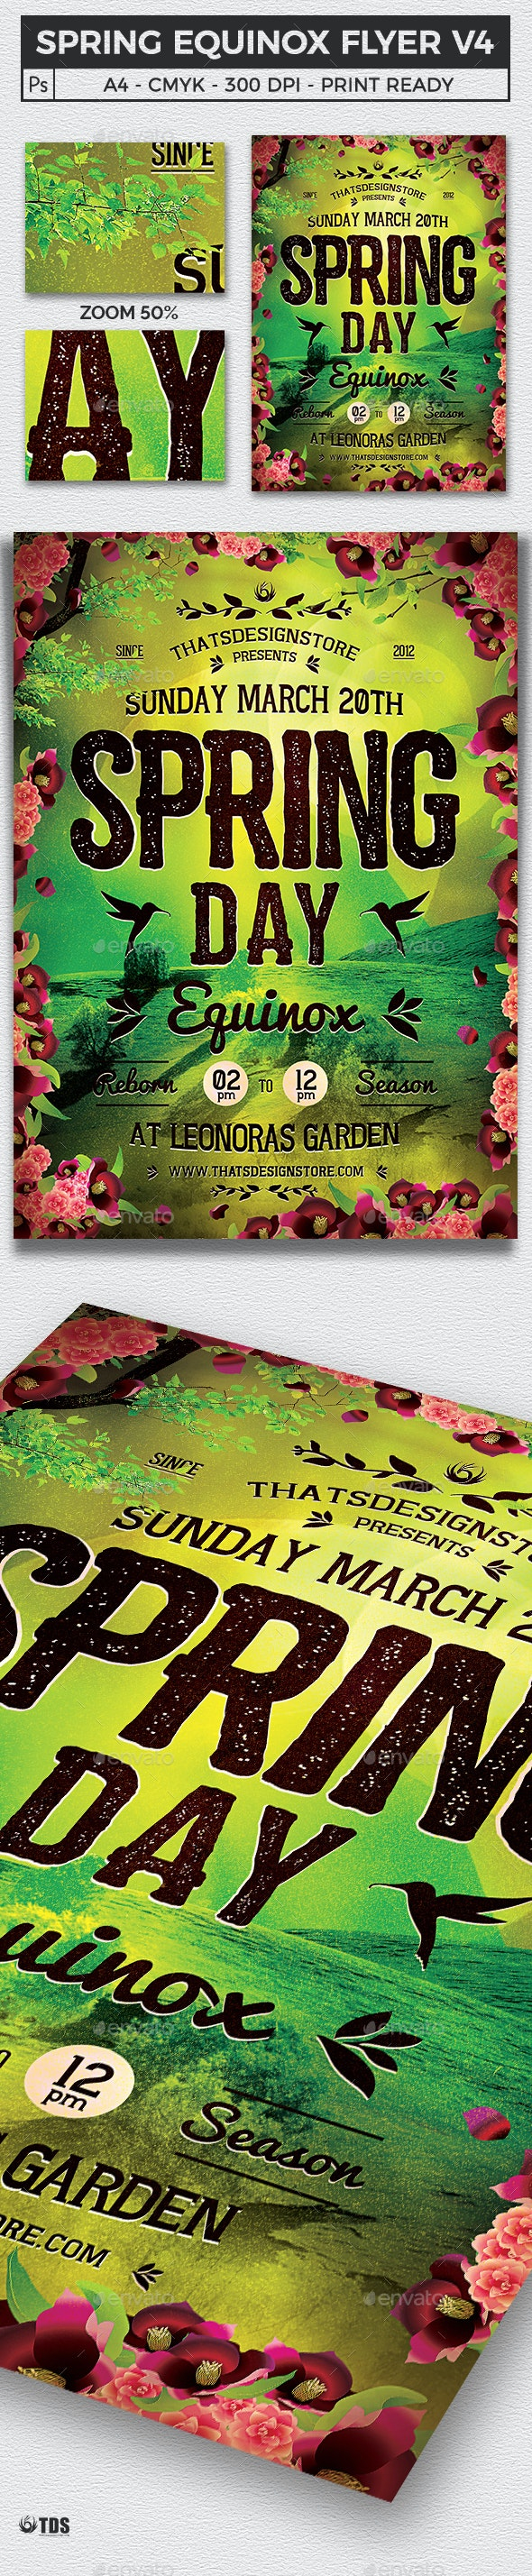 Spring Equinox Flyer Template V4 - Clubs & Parties Events